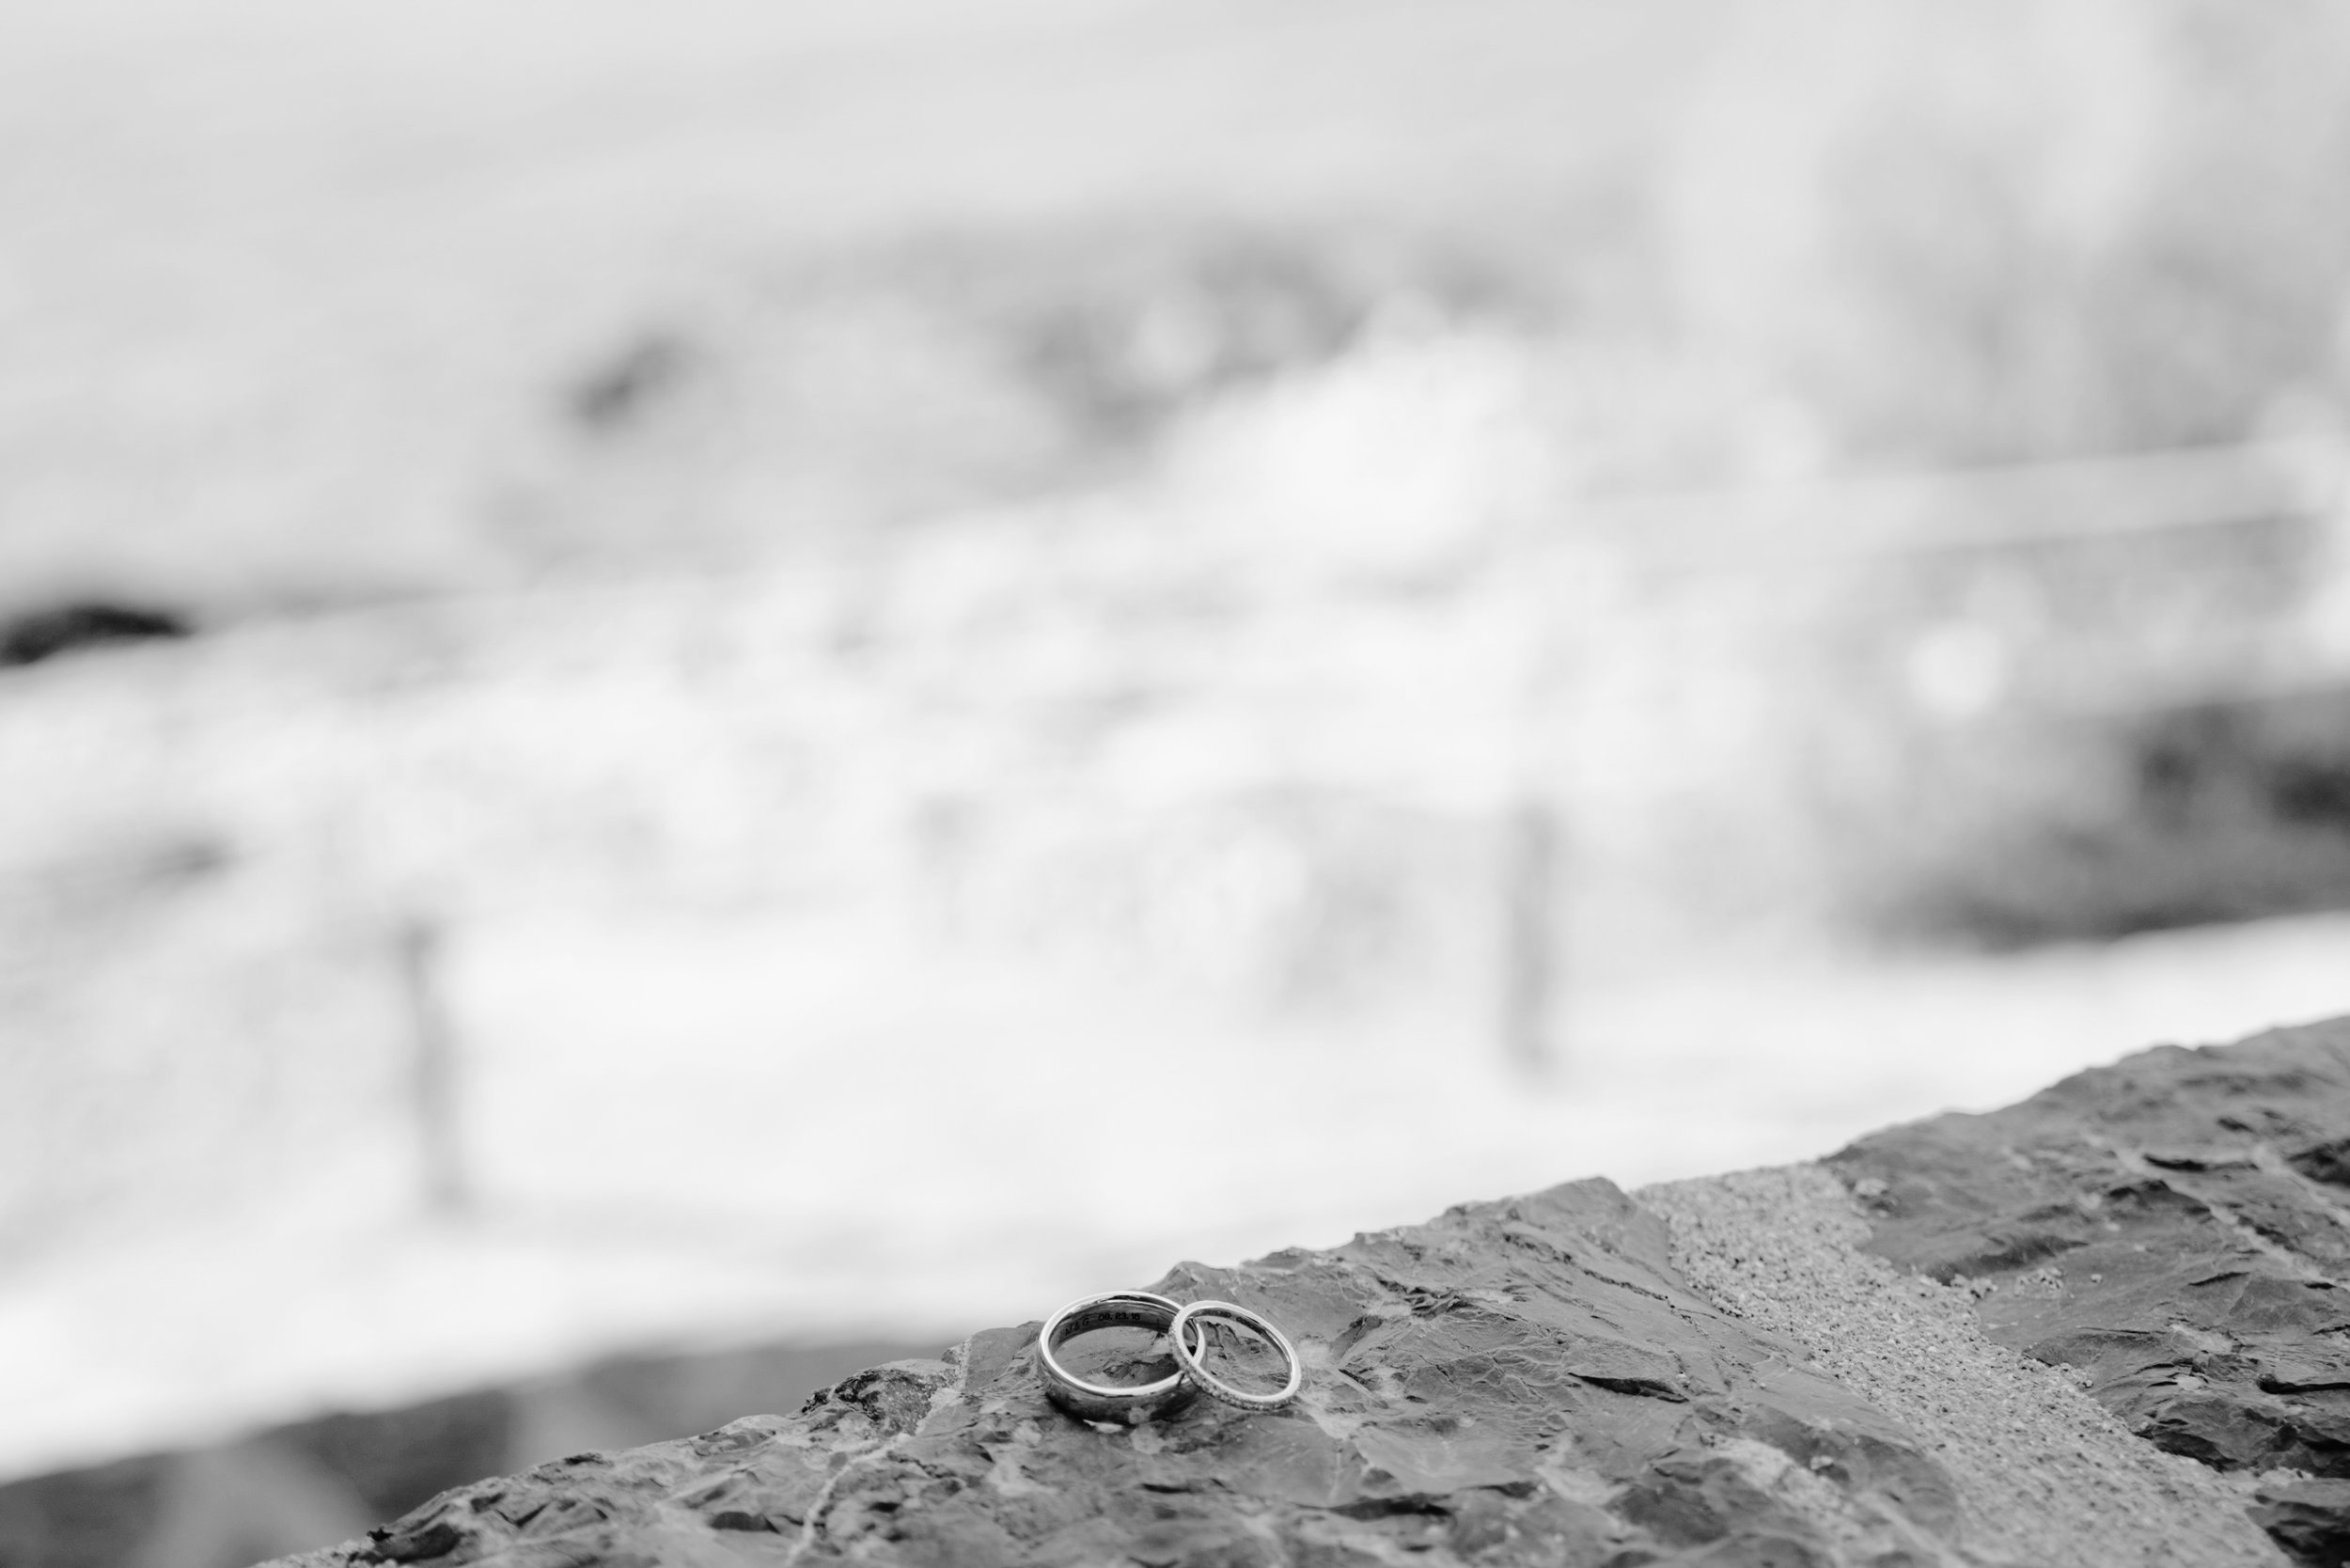 RosewoodWeddingPhotos-DestinationWeddingPhotographer-Greece-Monemvasia-DestinationWedding-WeddingsinGreece-WeddingRings